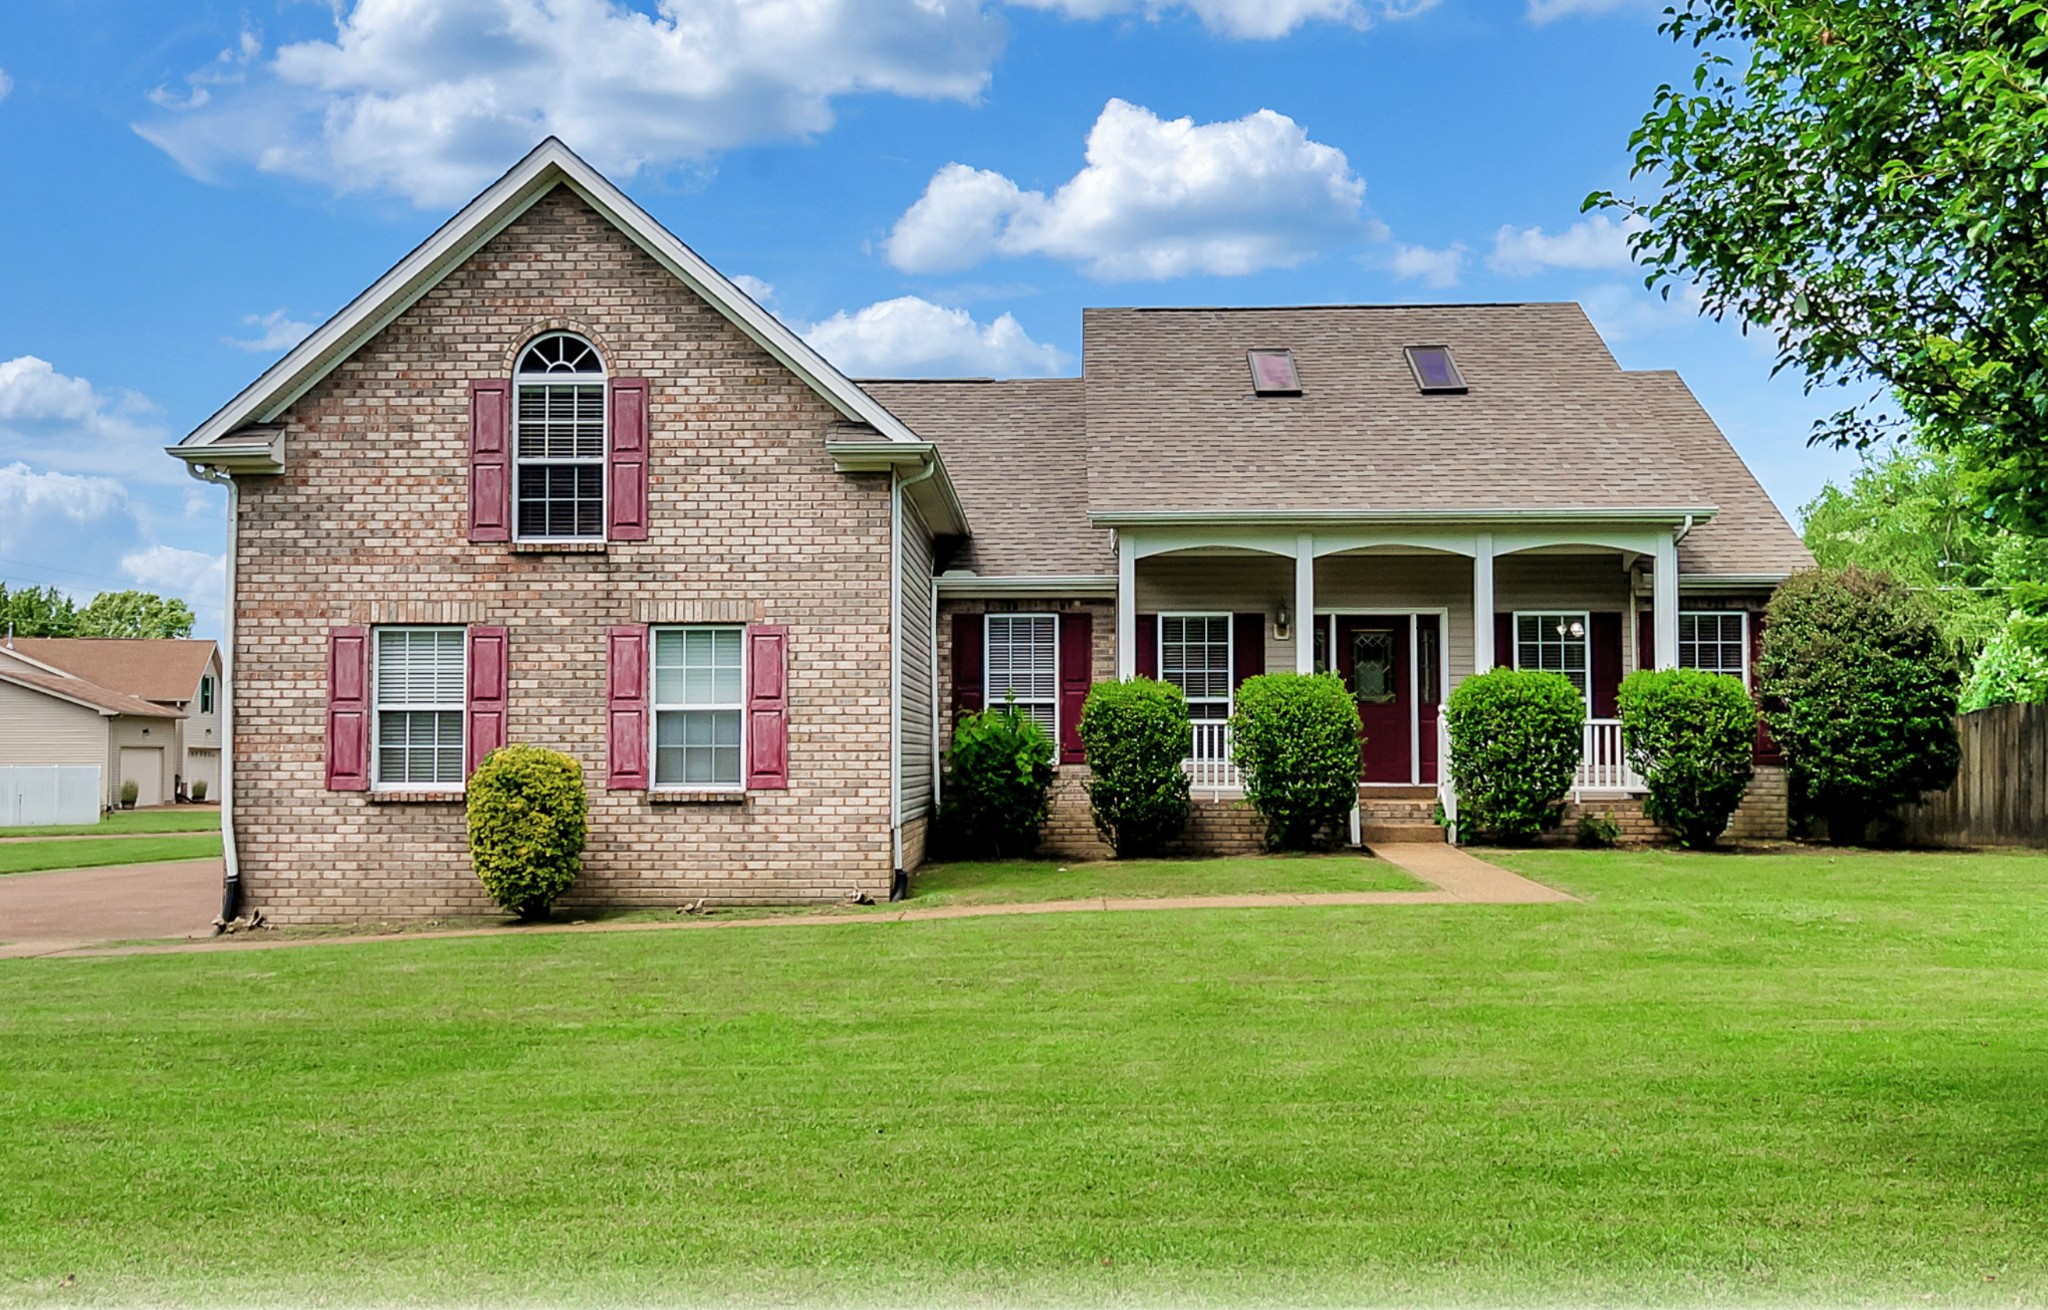 Beautiful Home With Soaring Ceilings And Fenced Backyard!  606 Hunterwood Dr., White House, TN.  37188